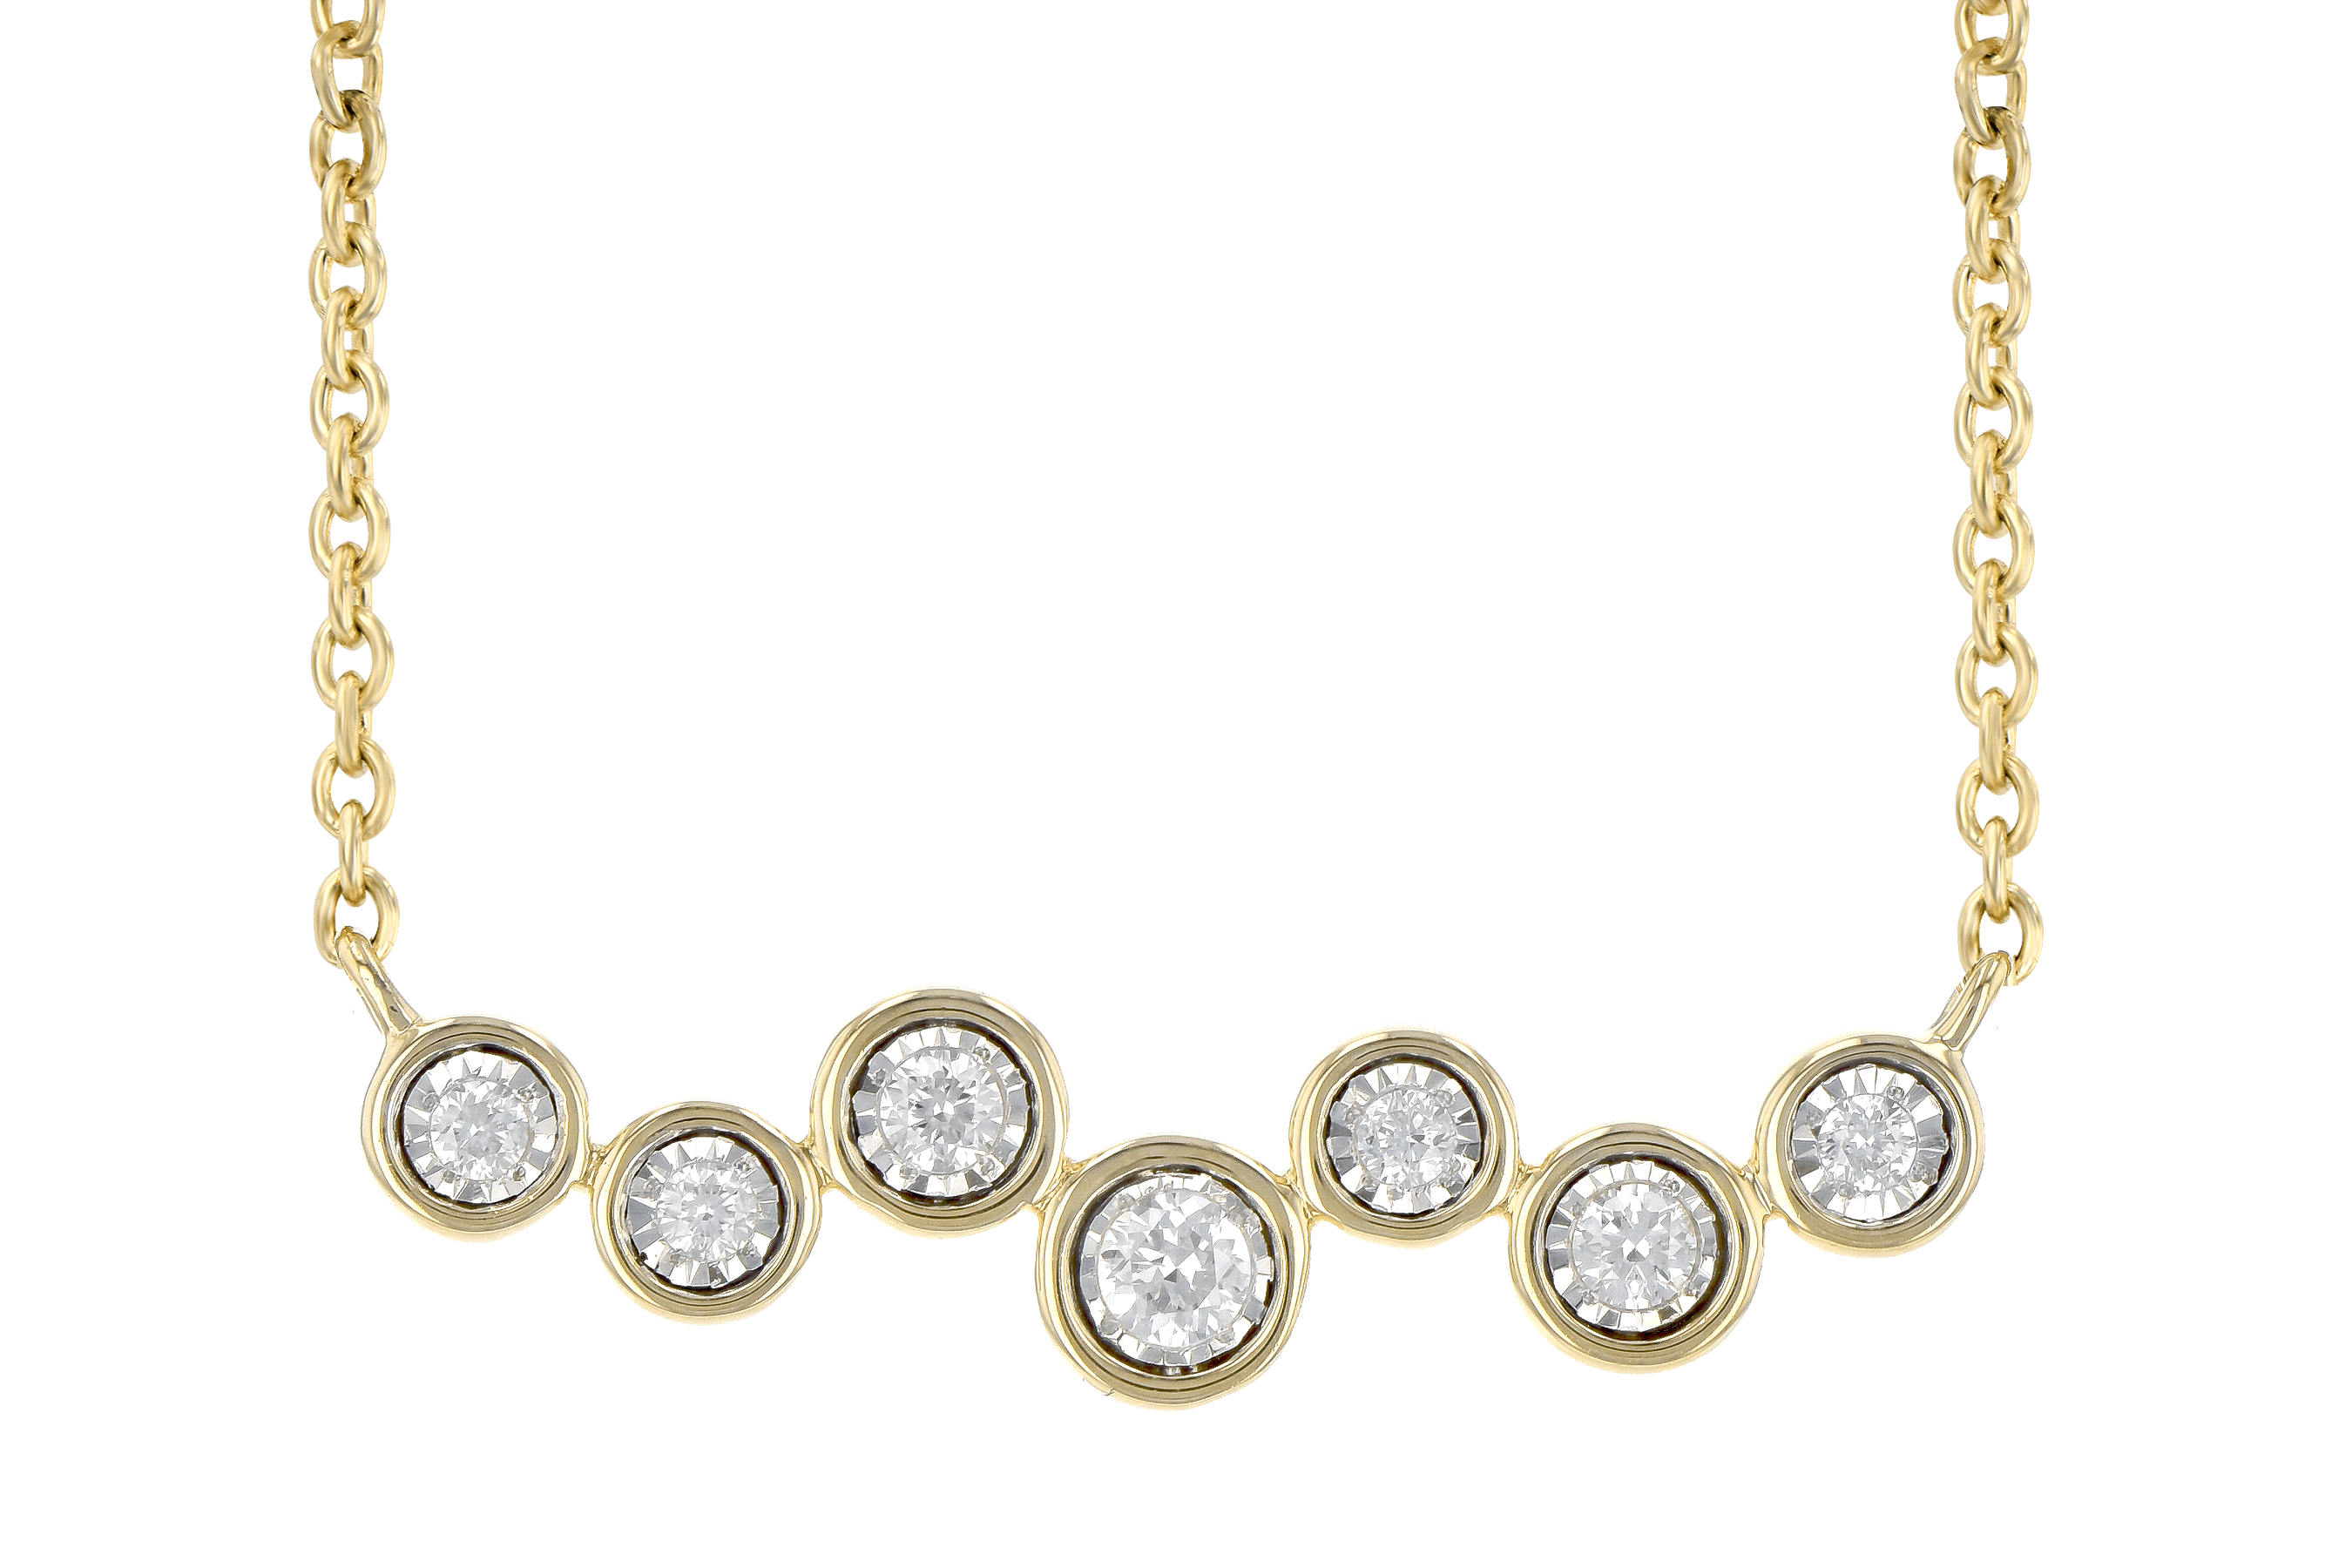 C190-16177: NECKLACE .13 TW